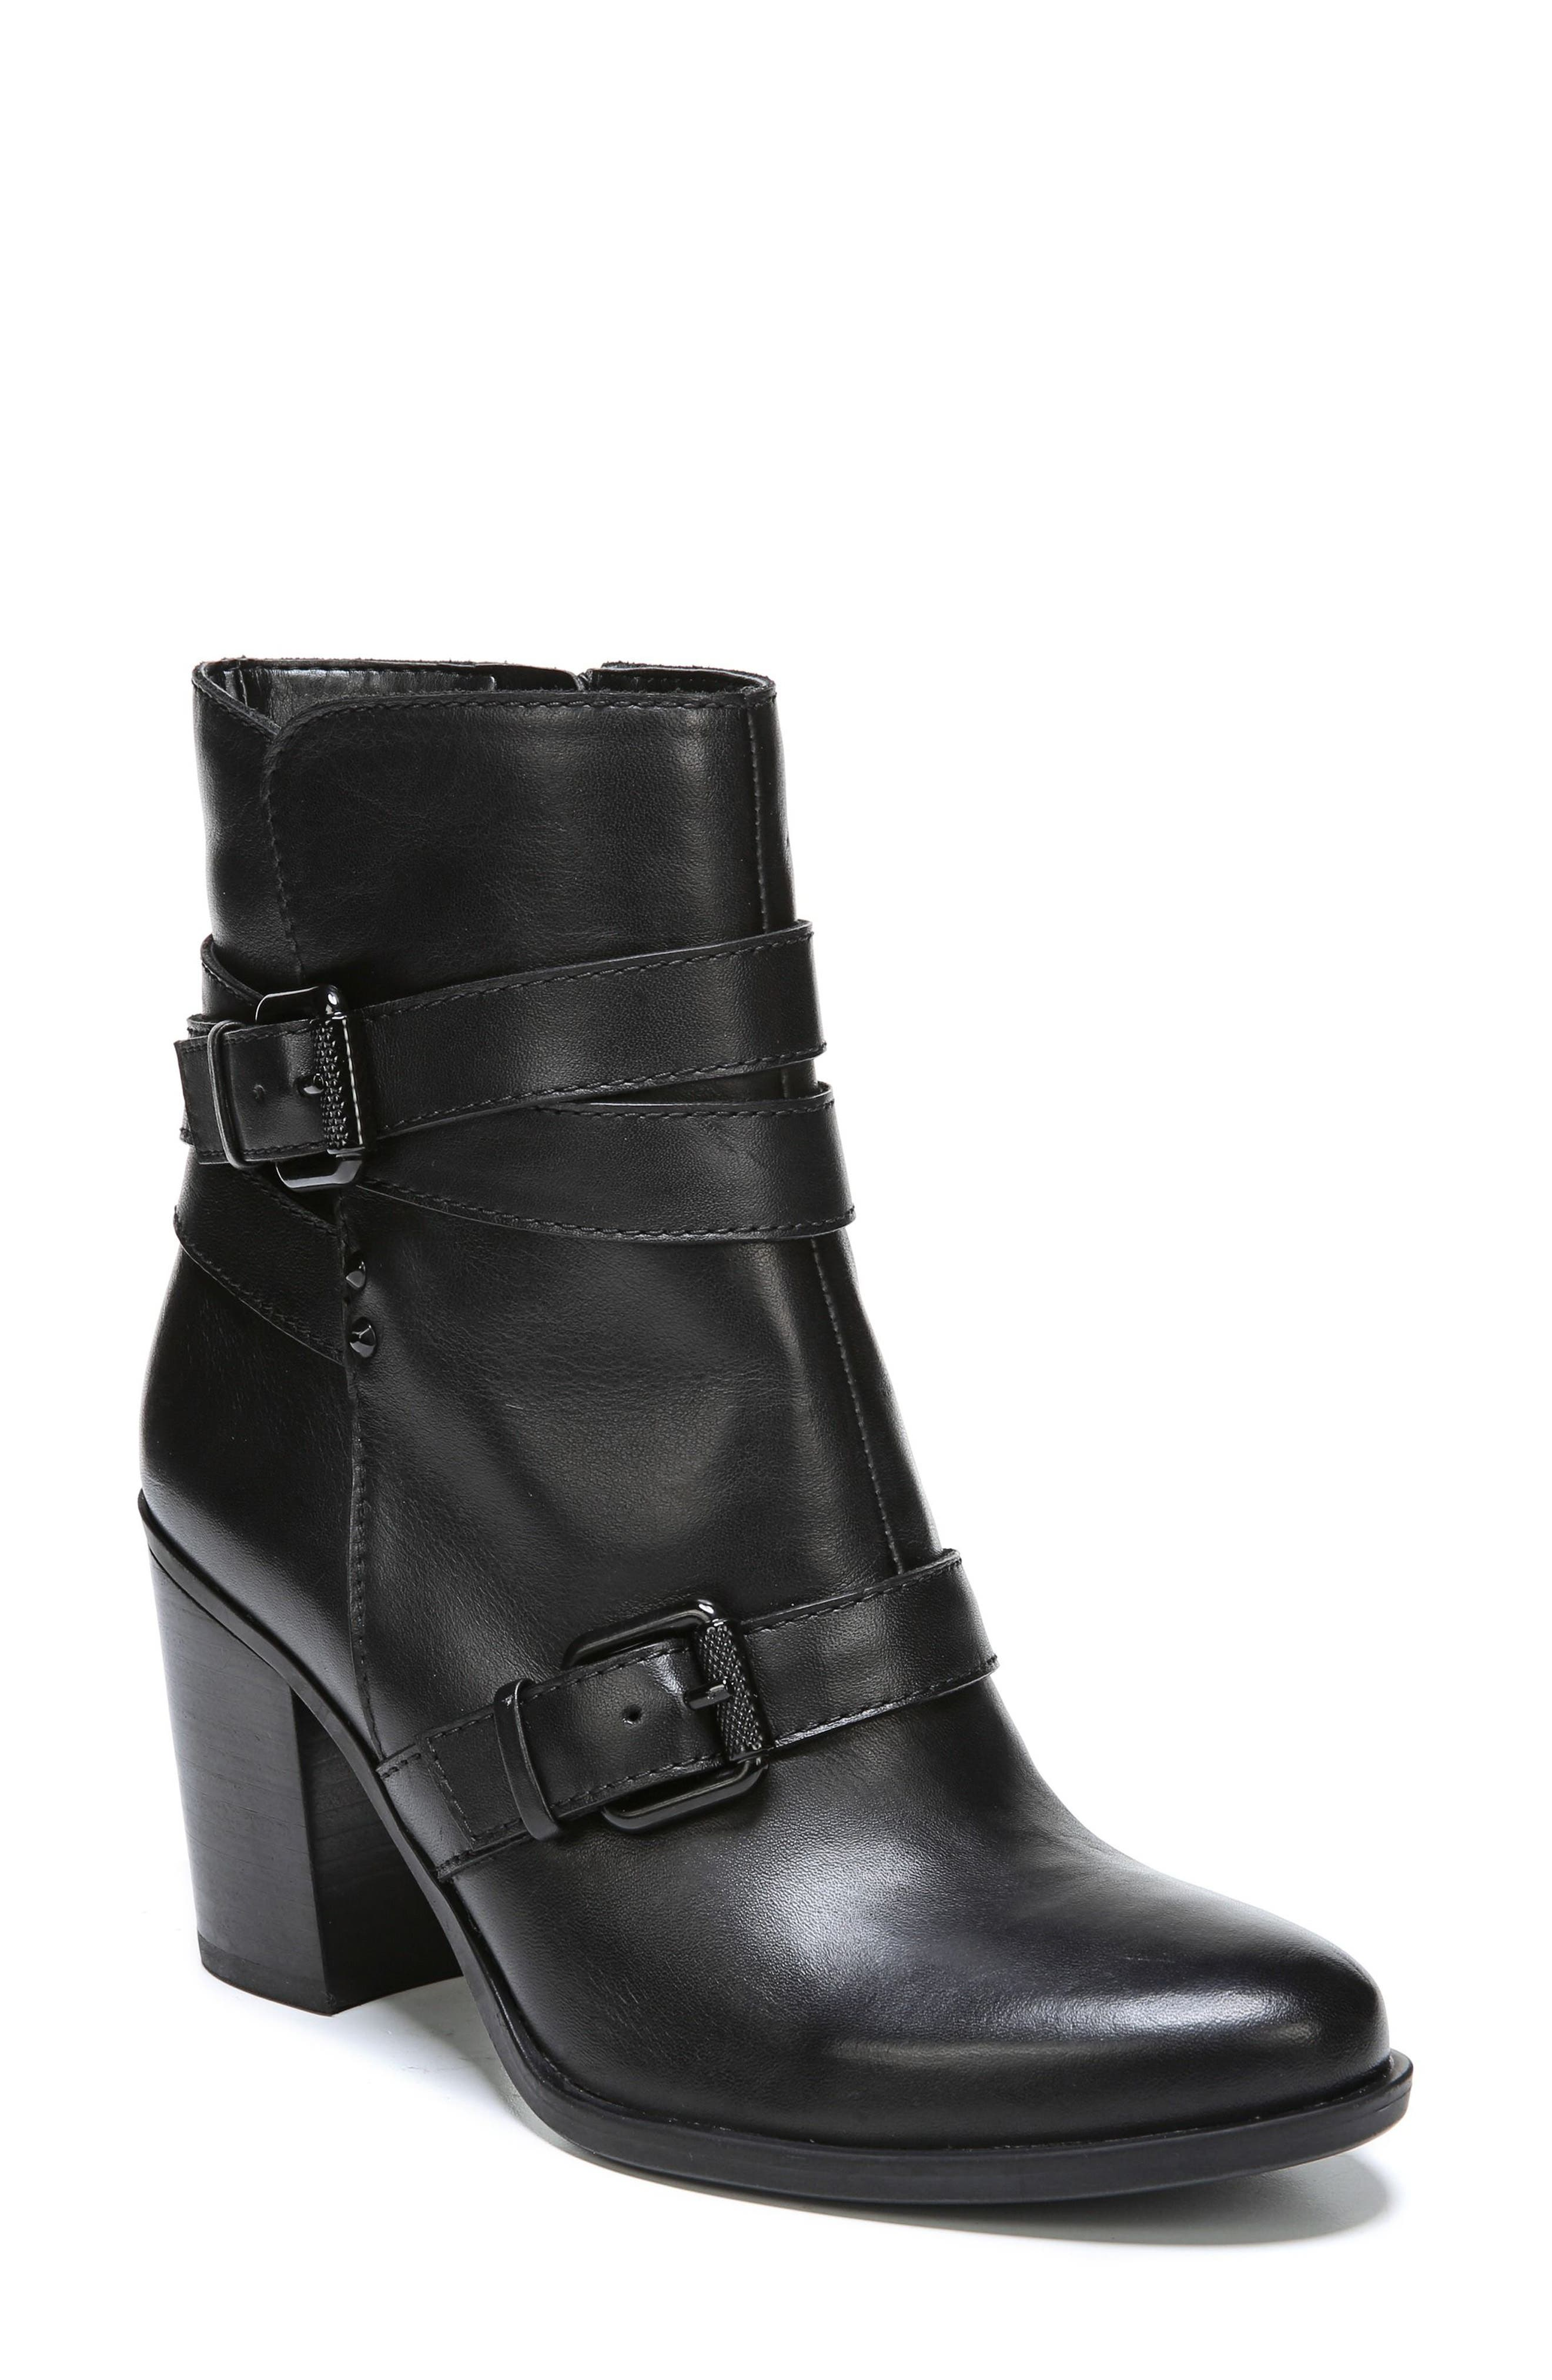 Karlie Buckle Bootie,                             Main thumbnail 1, color,                             001